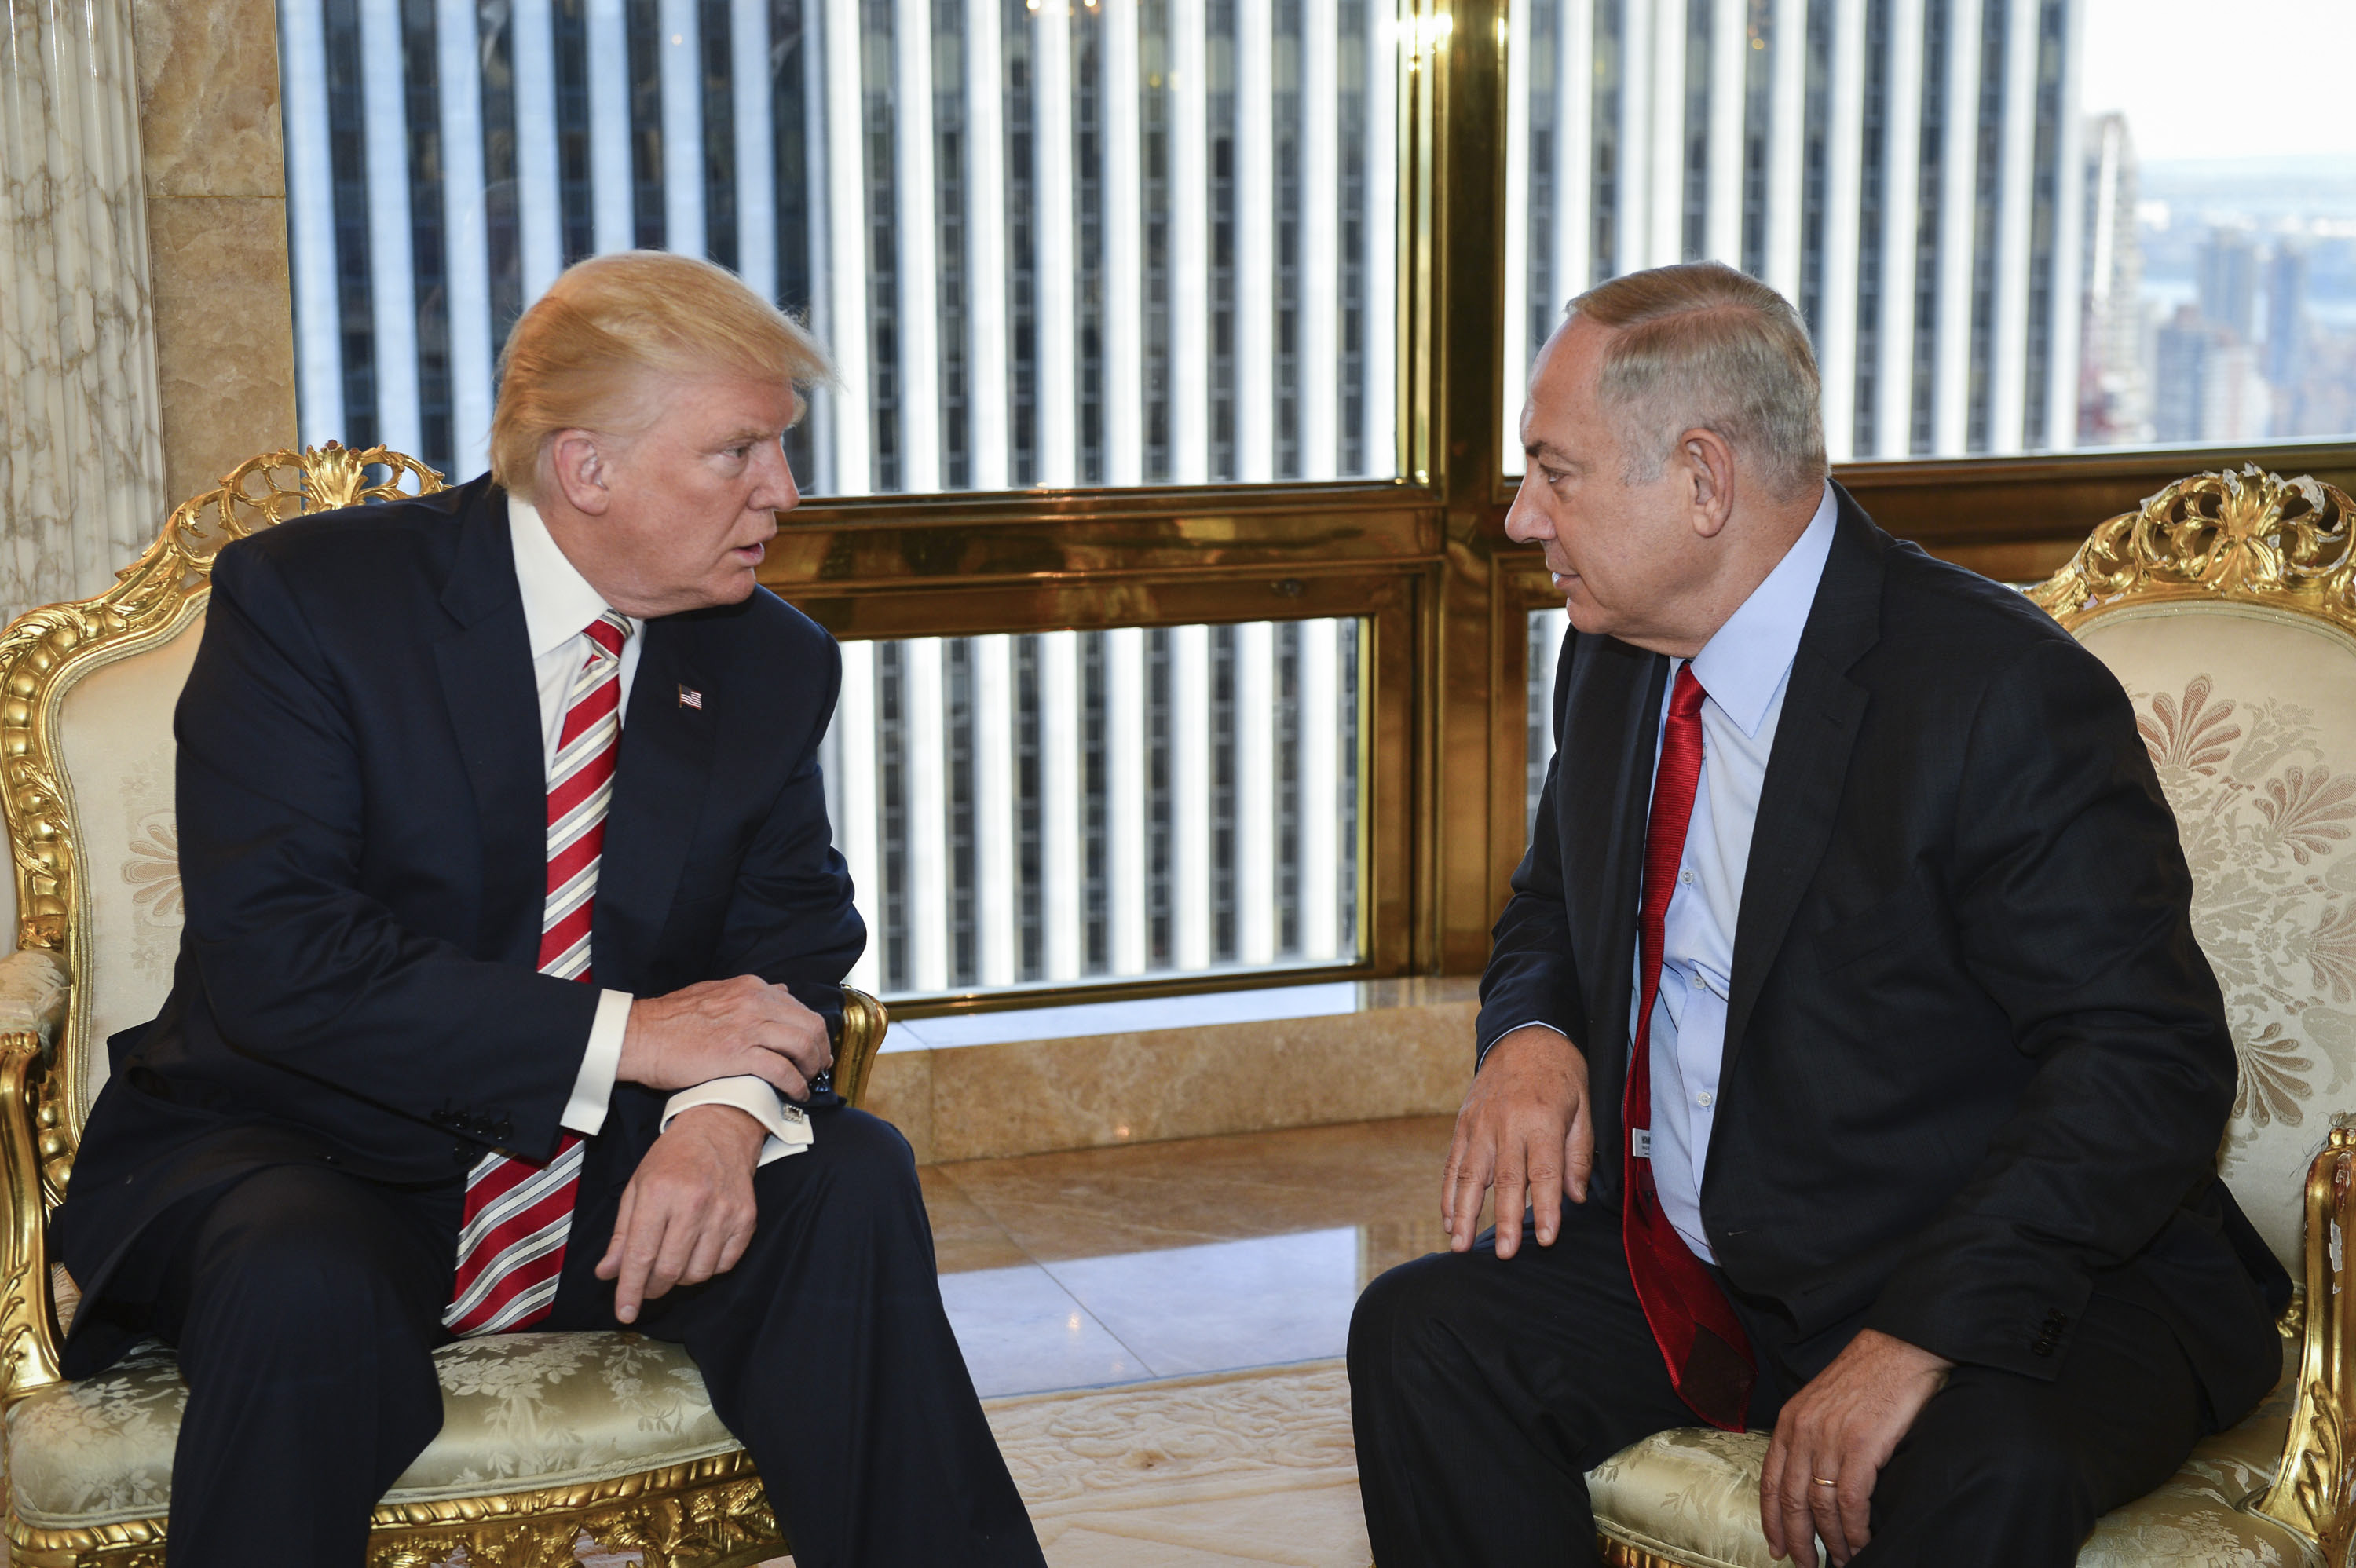 Prime Minister Benjamin Netanyahu met with Trump when he was the Republican Presidential candidate, in New York, on September 25, 2016. Photo by Kobi Gideon/GPO